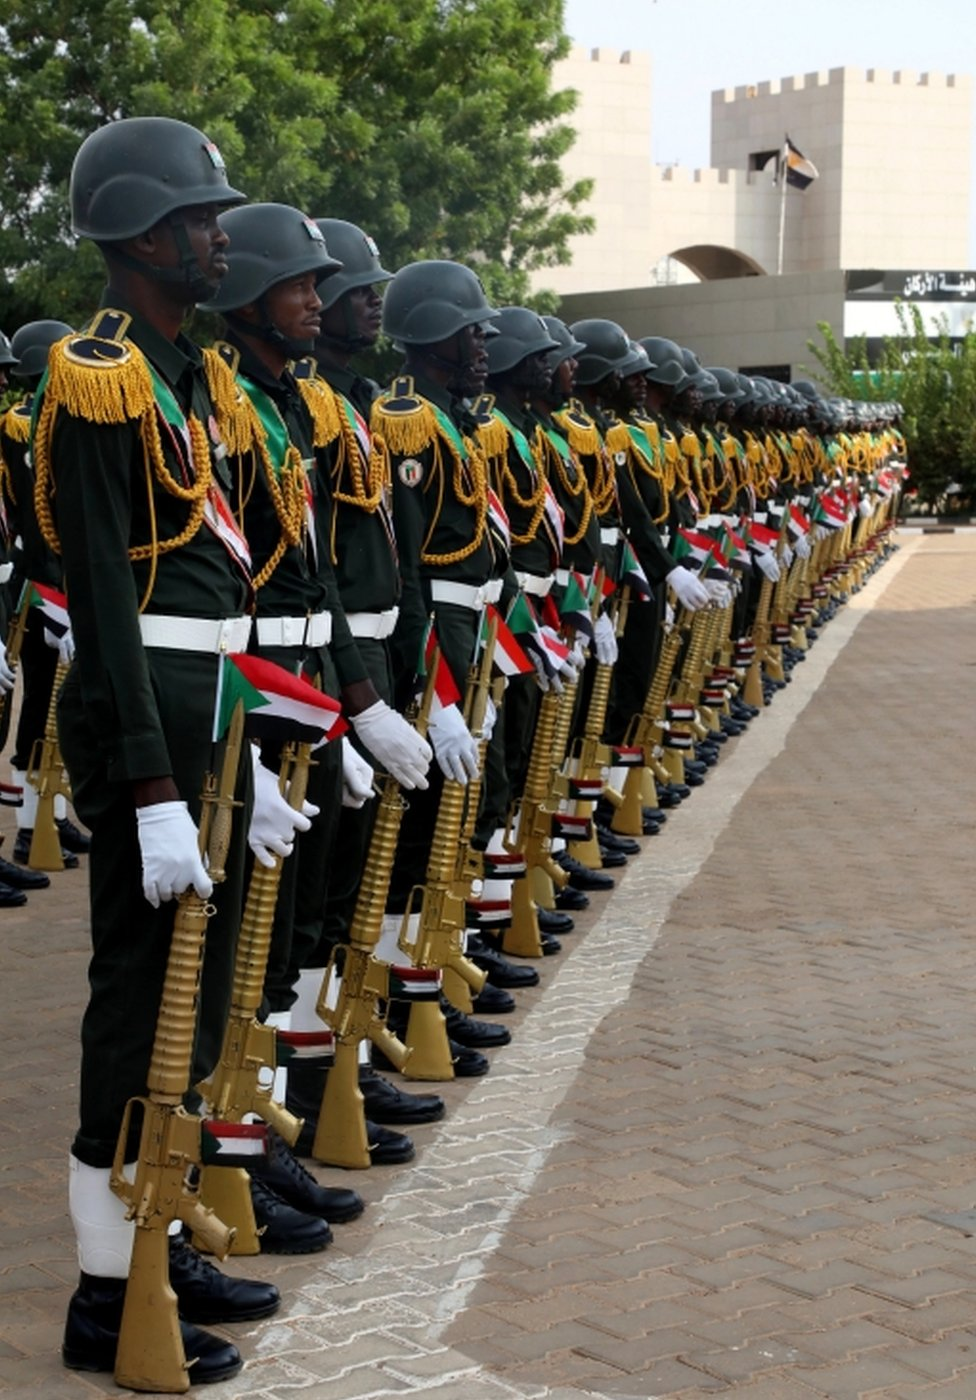 Uniformed military guards holding gold-coloured rifles stand at ease.